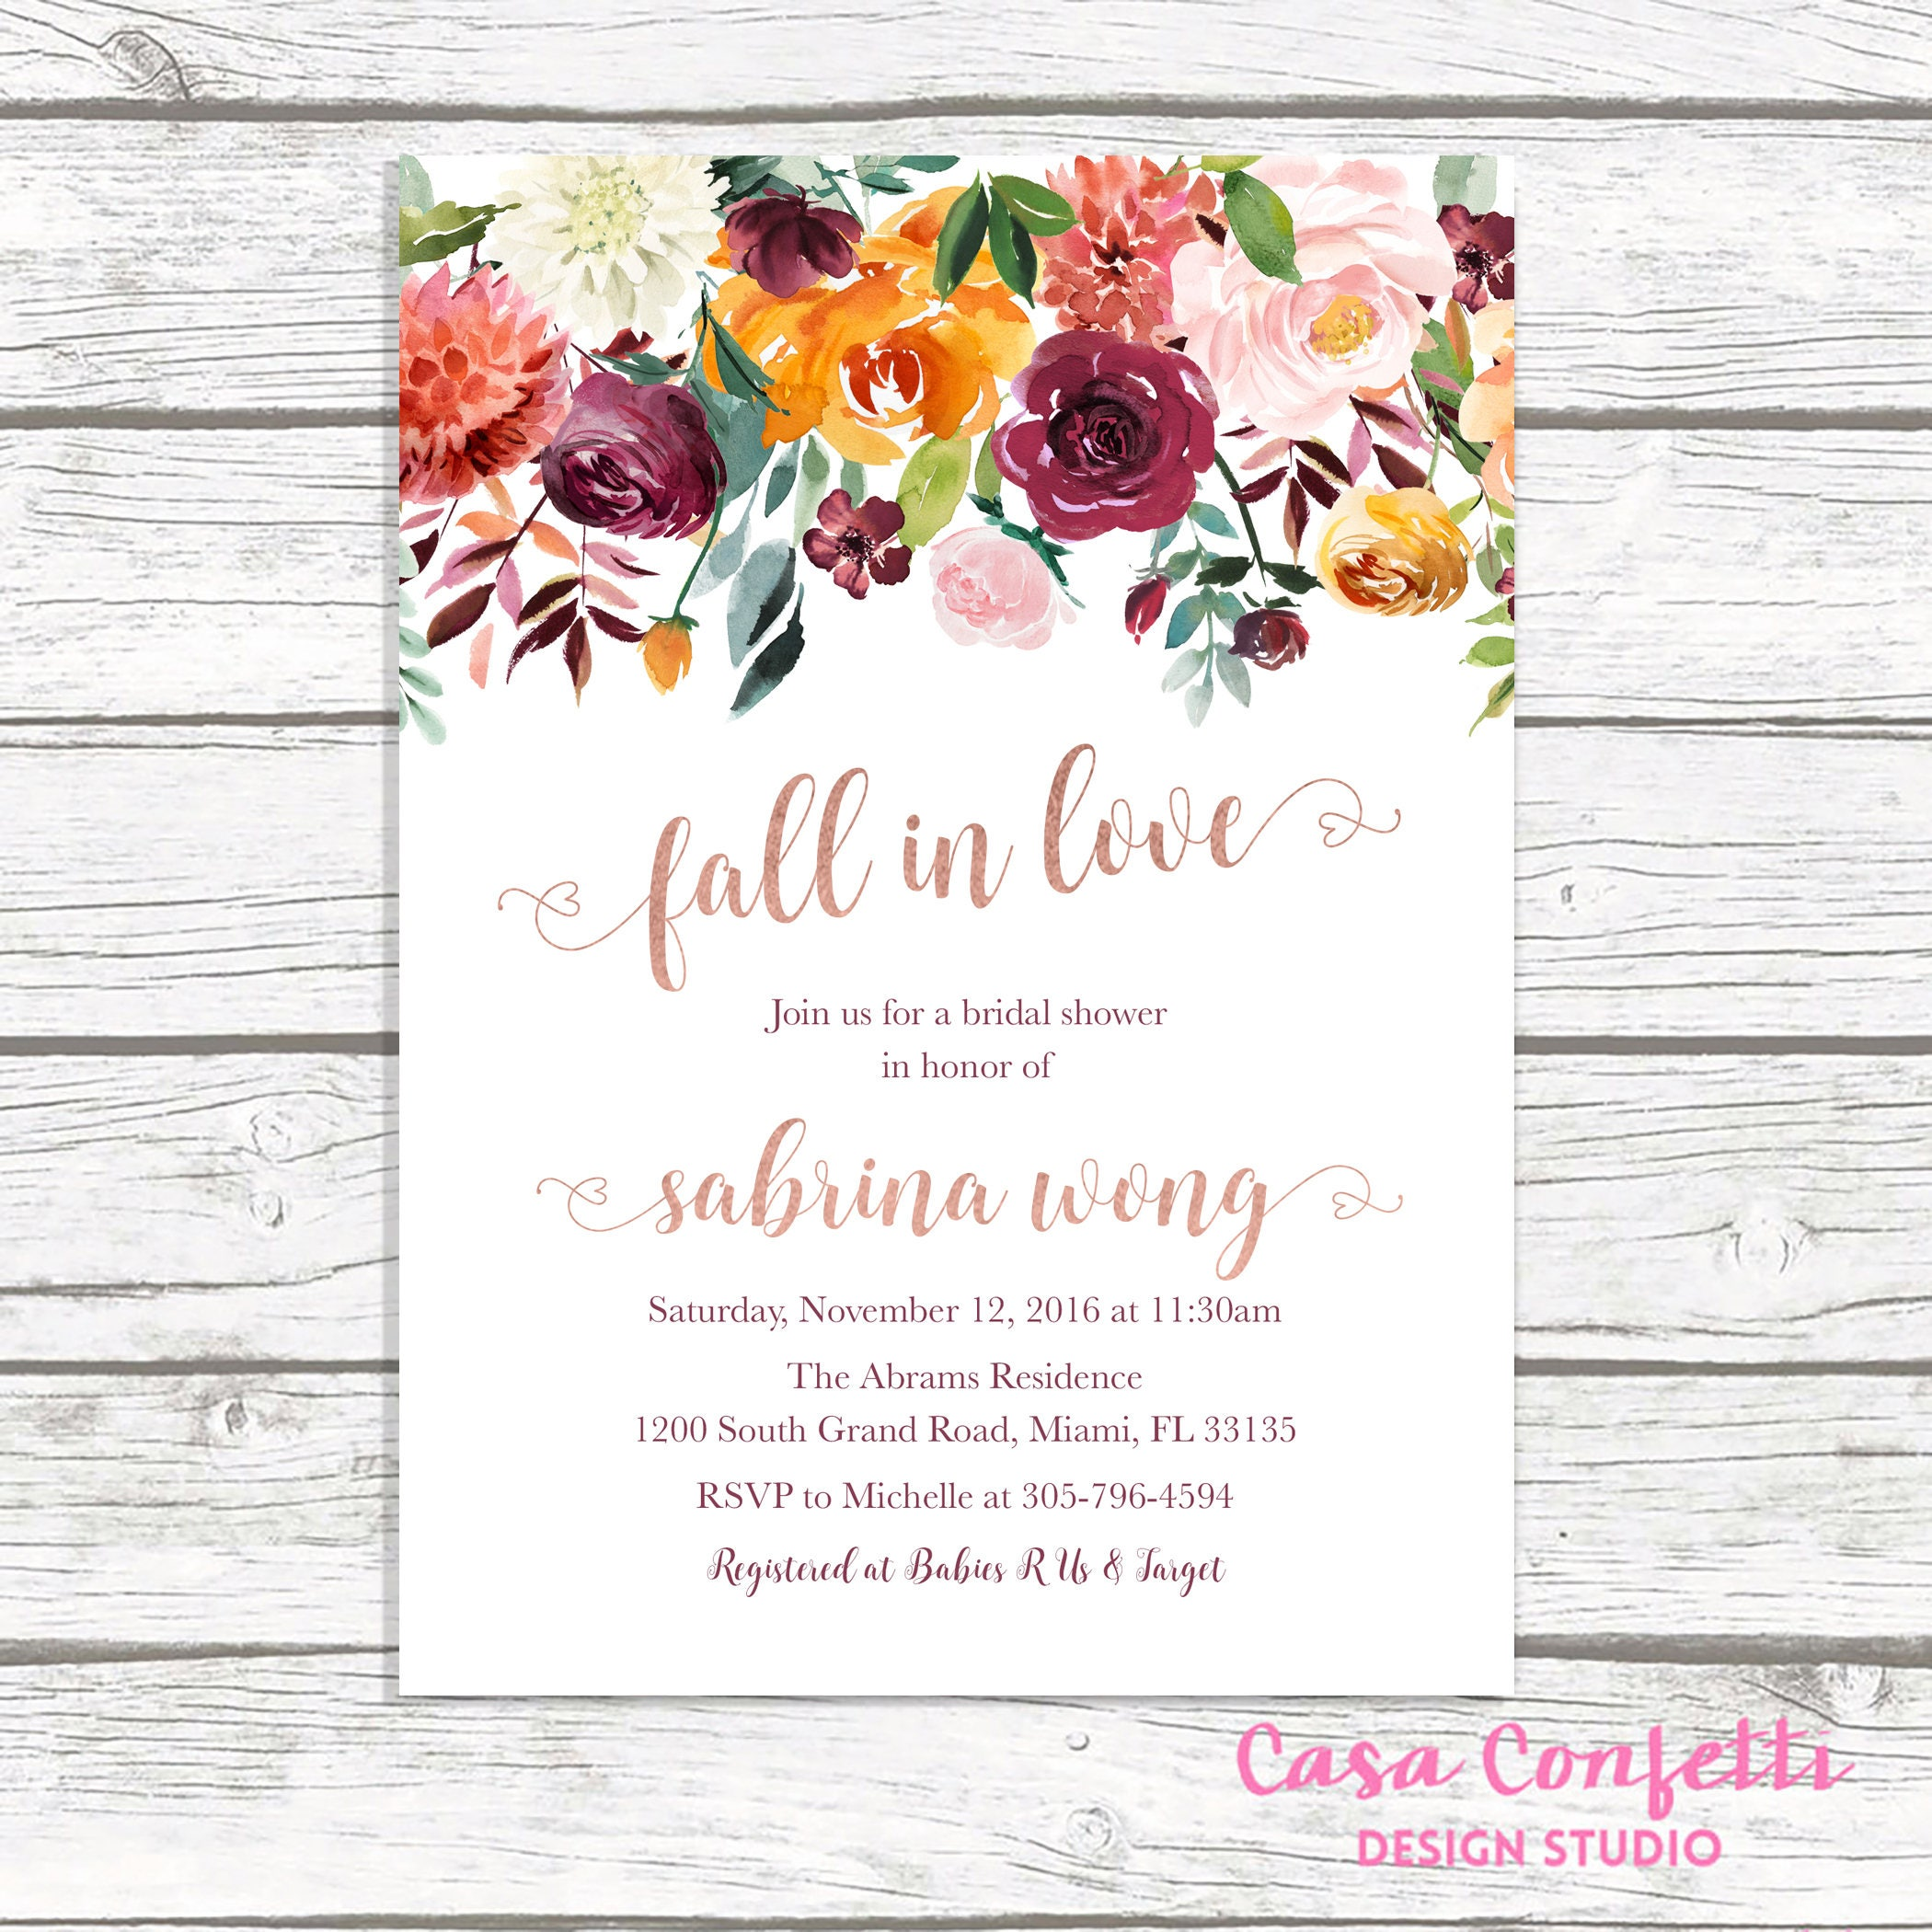 fall in love bridal shower invitation rose gold bridal shower invitation burgundy bridal shower invitation fall bridal shower invite